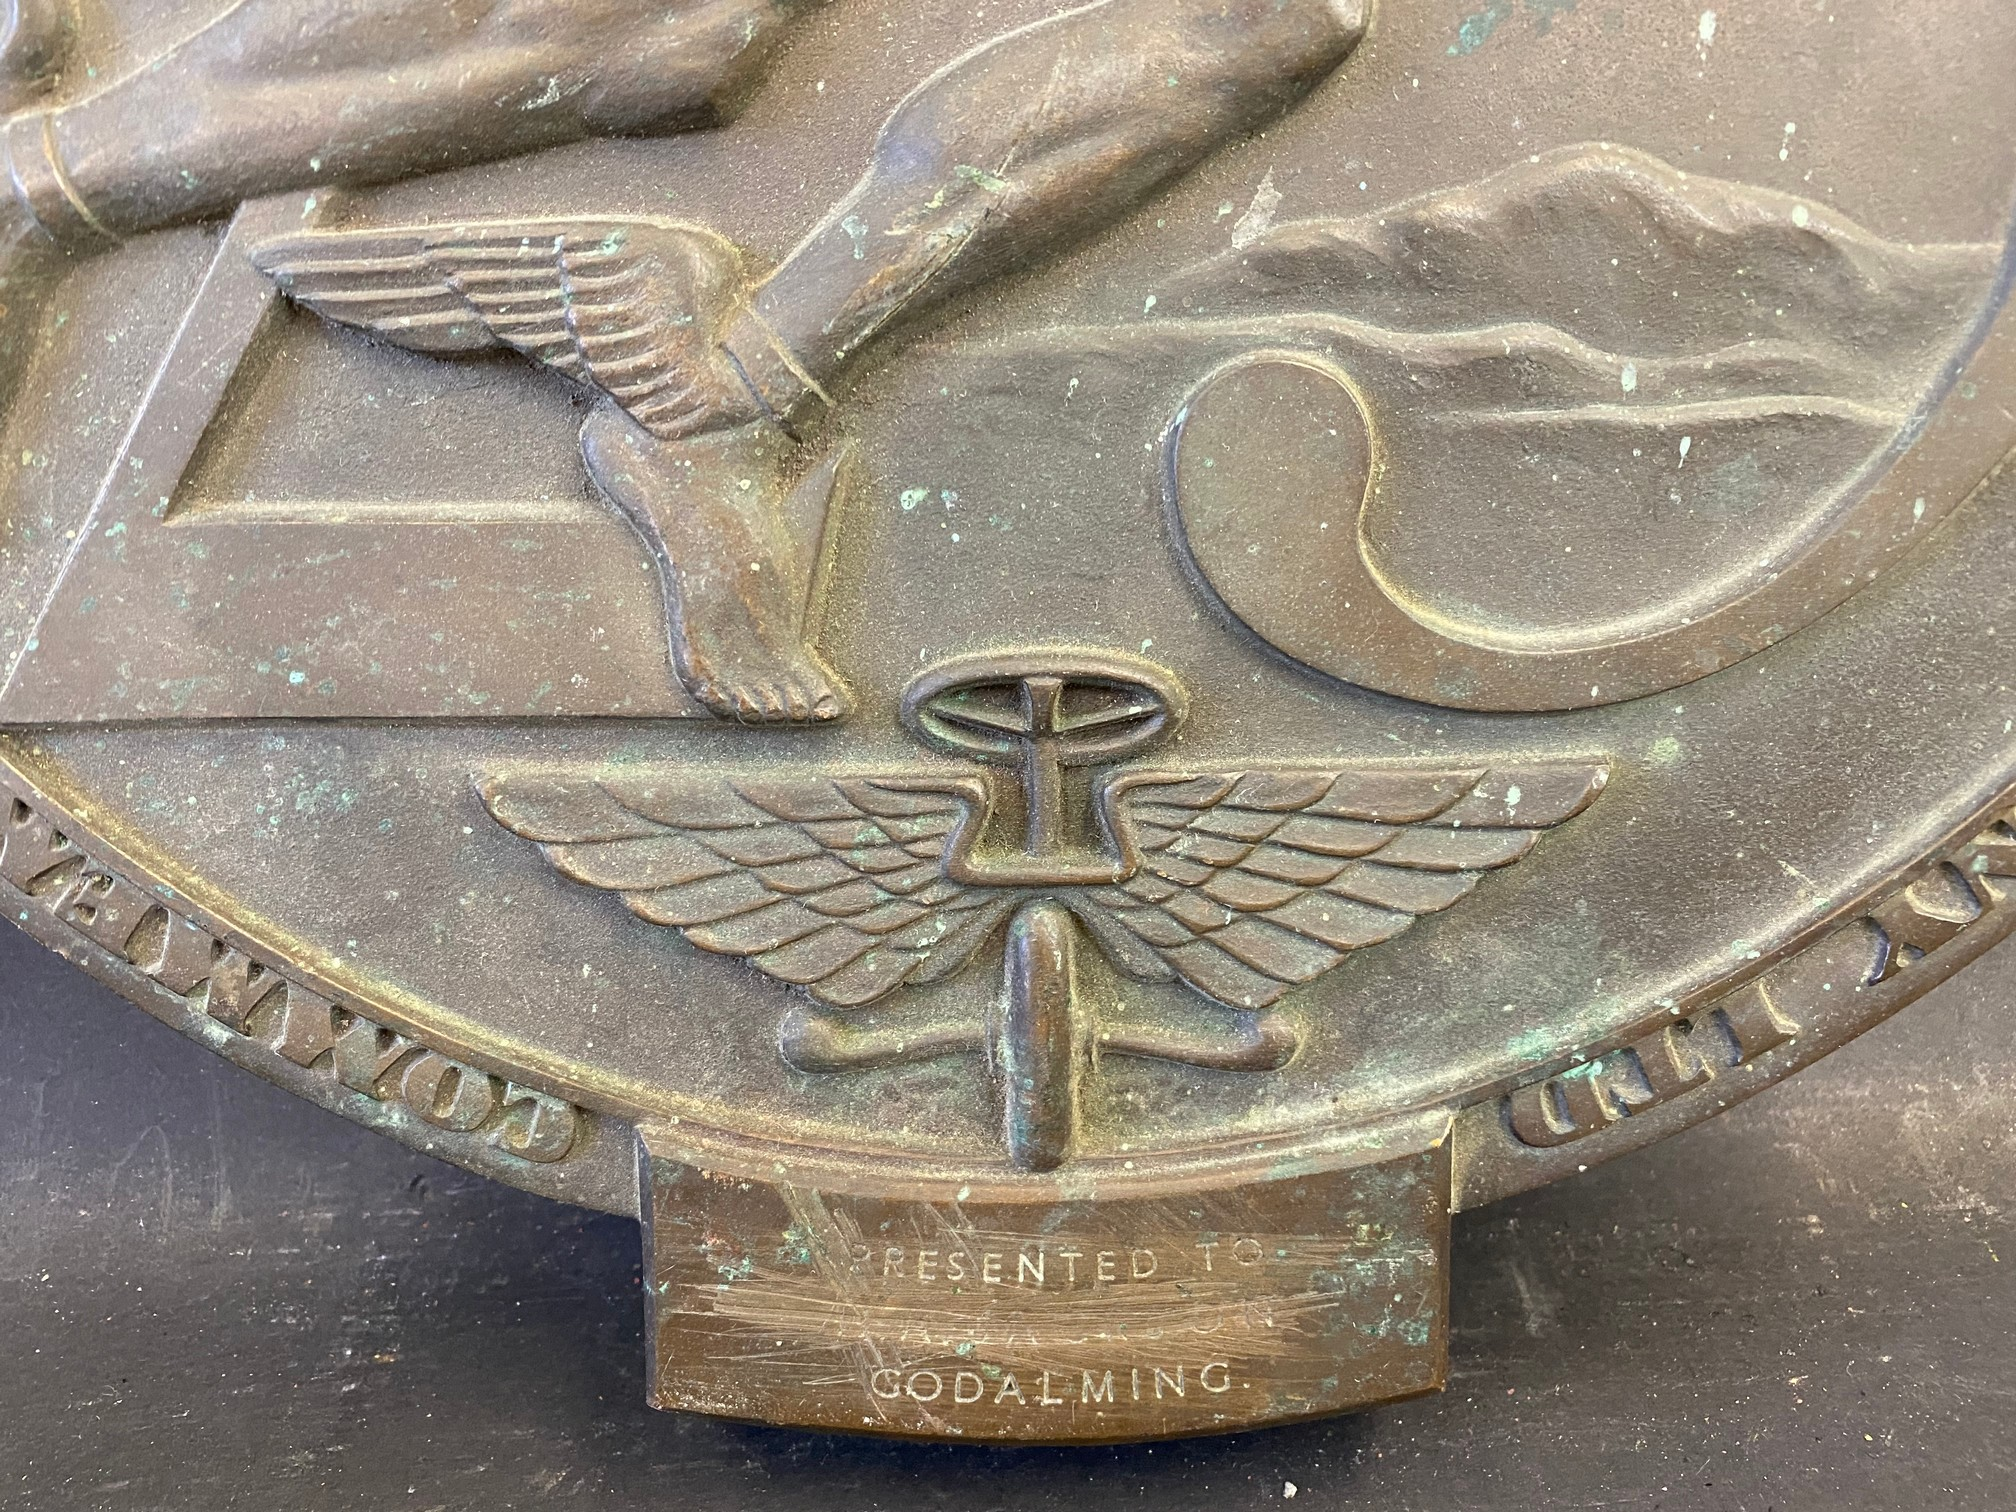 """An Austin 25 Year bronze dealership plaque, presented to a garage in Godalming, 16 x 17"""". - Image 2 of 4"""